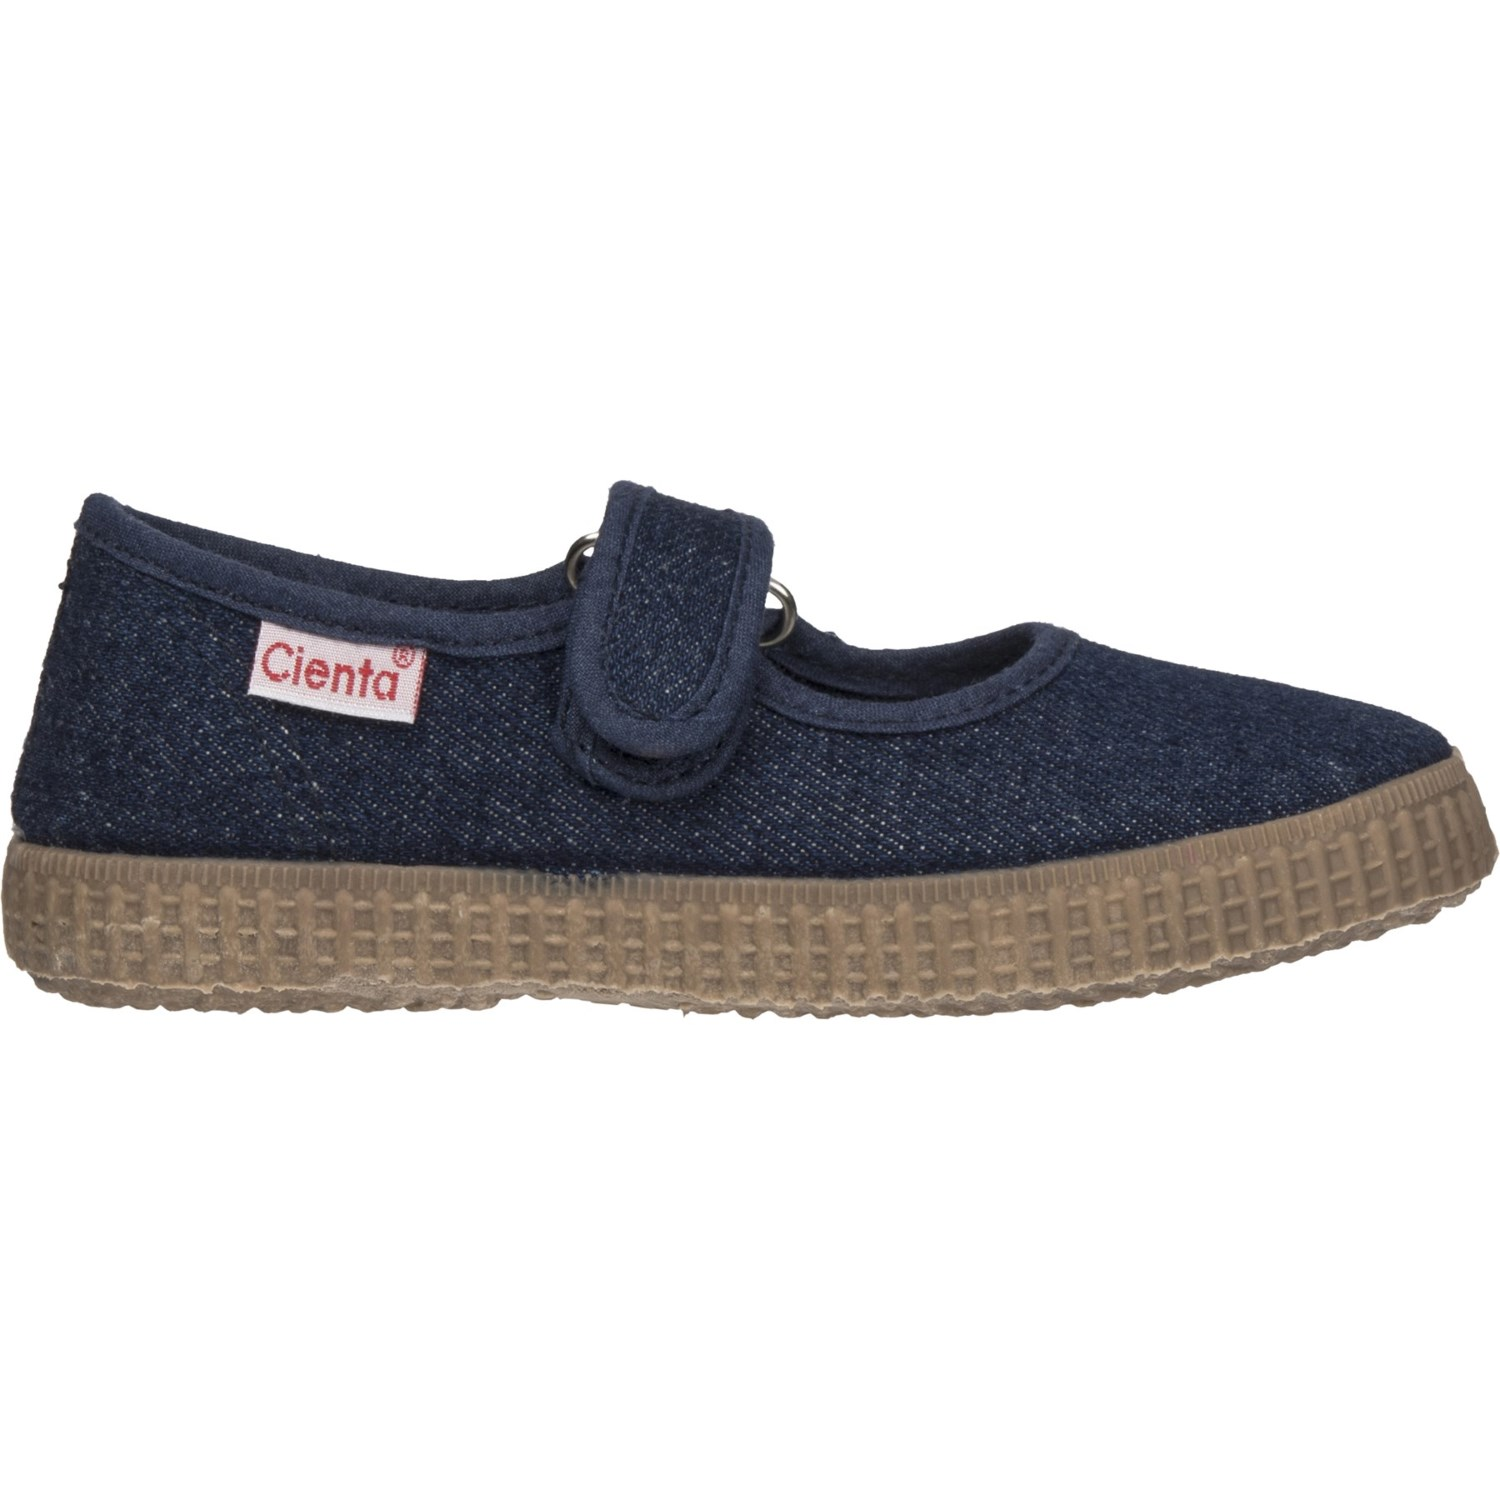 c0ba66df84 Cienta Made in Spain Touch-Fasten Mary Jane Shoes (For Girls) - Save 66%